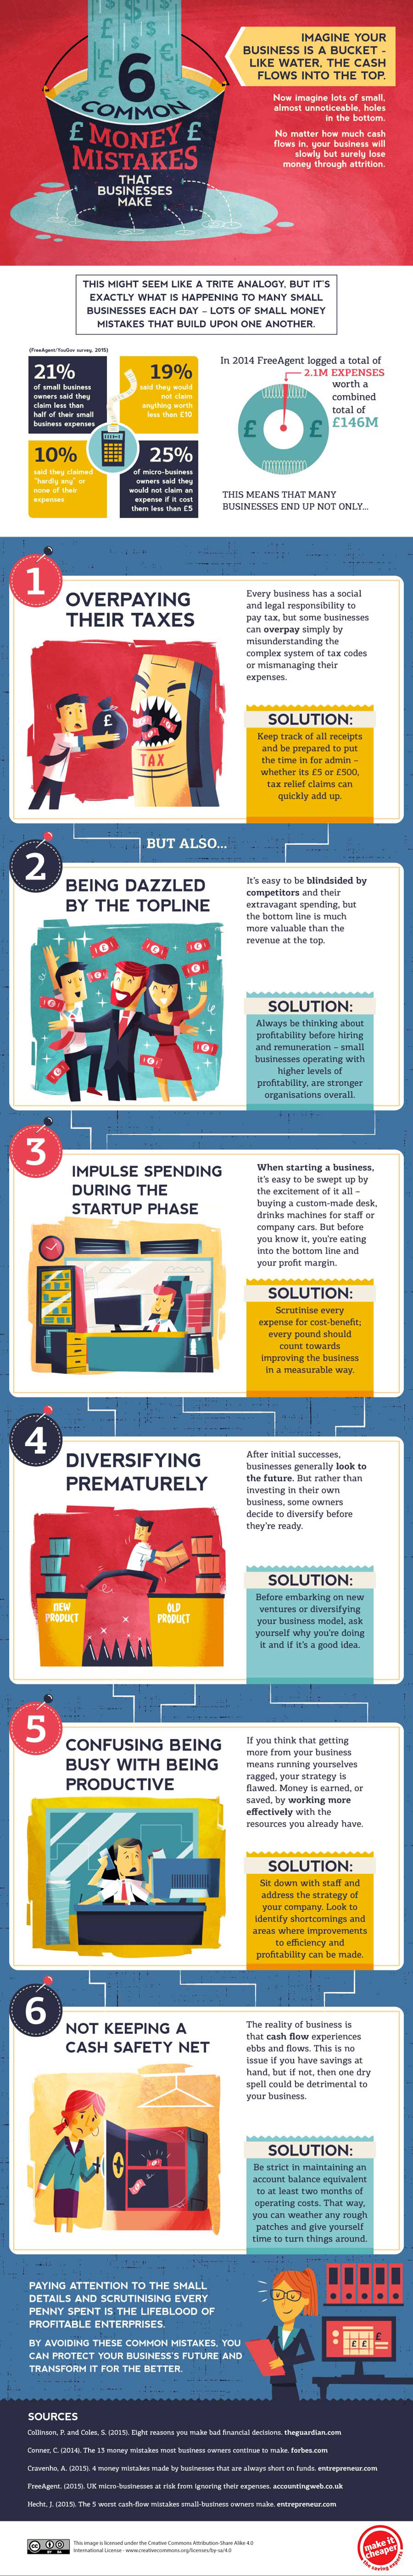 Money Mistakes that Small Businesses Make Infographic